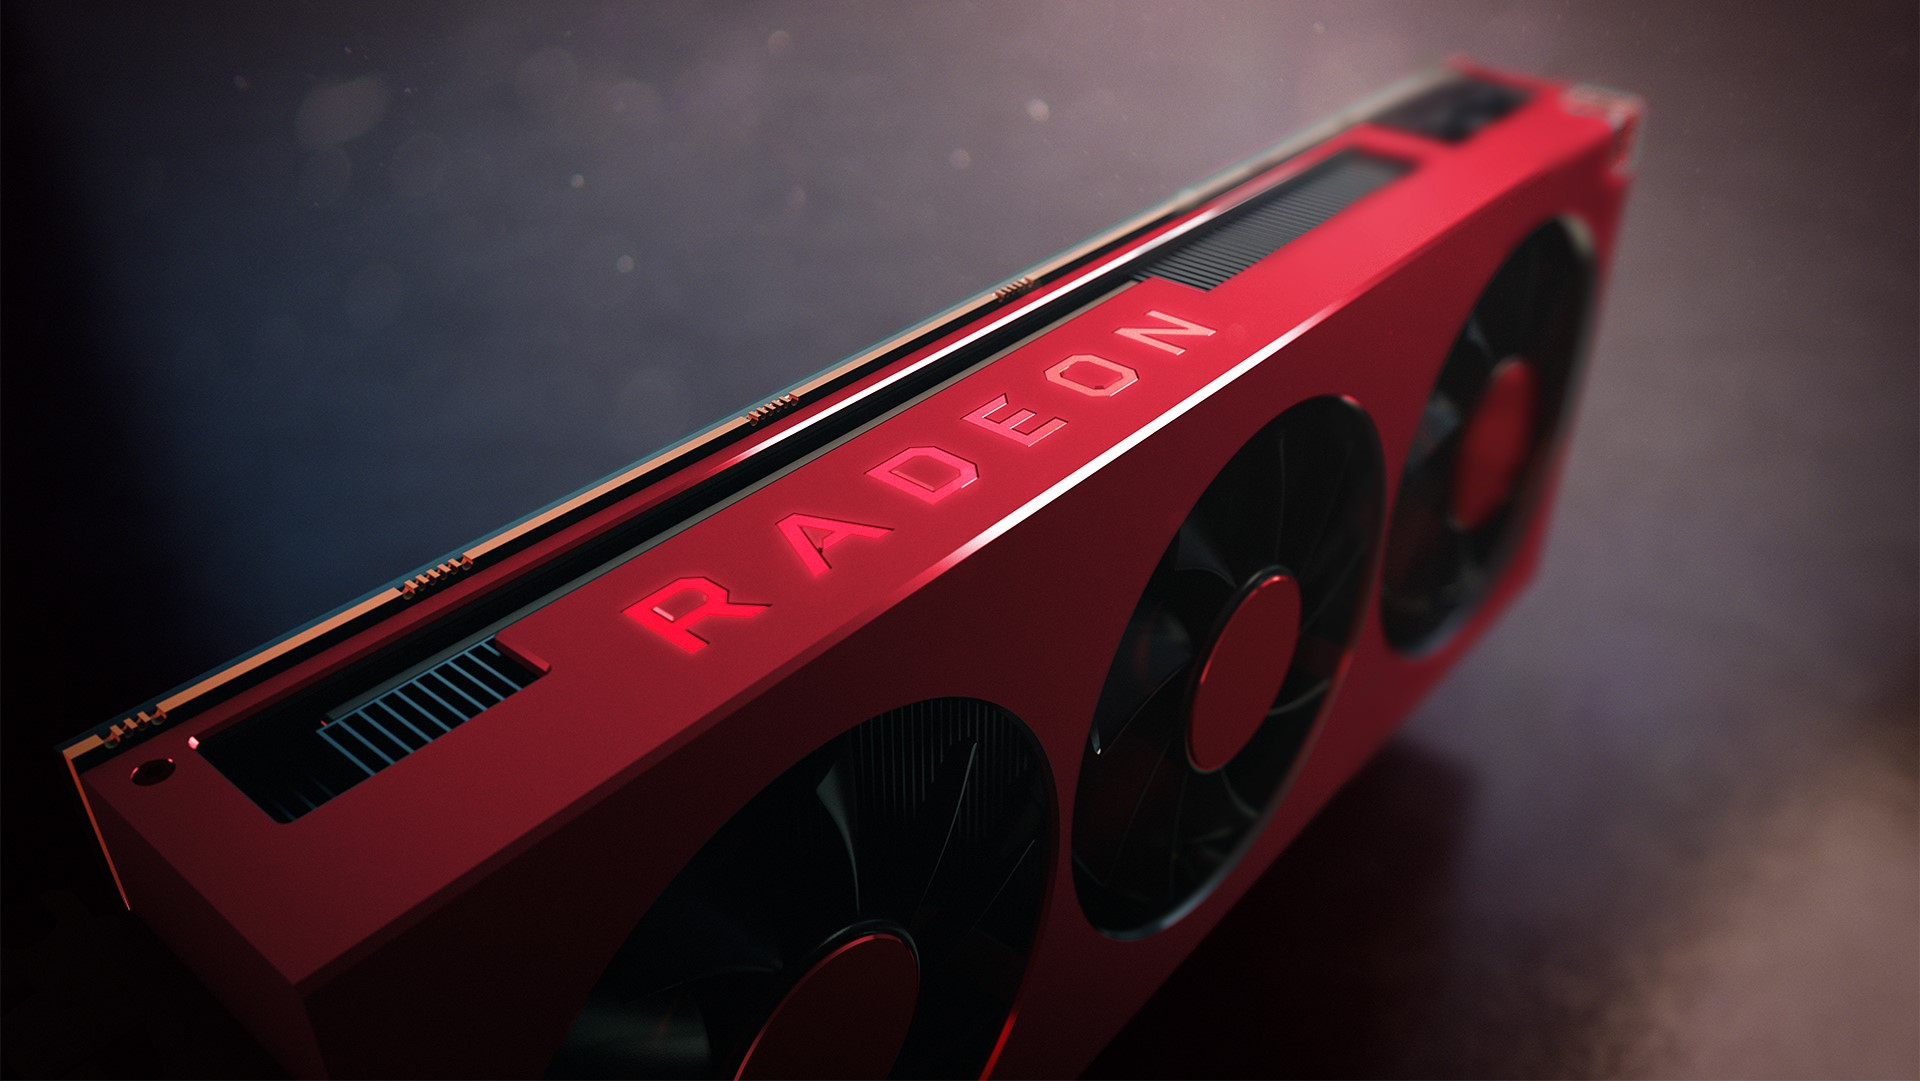 AMD confirms 'Nvidia killer' graphics card will be out in 2020